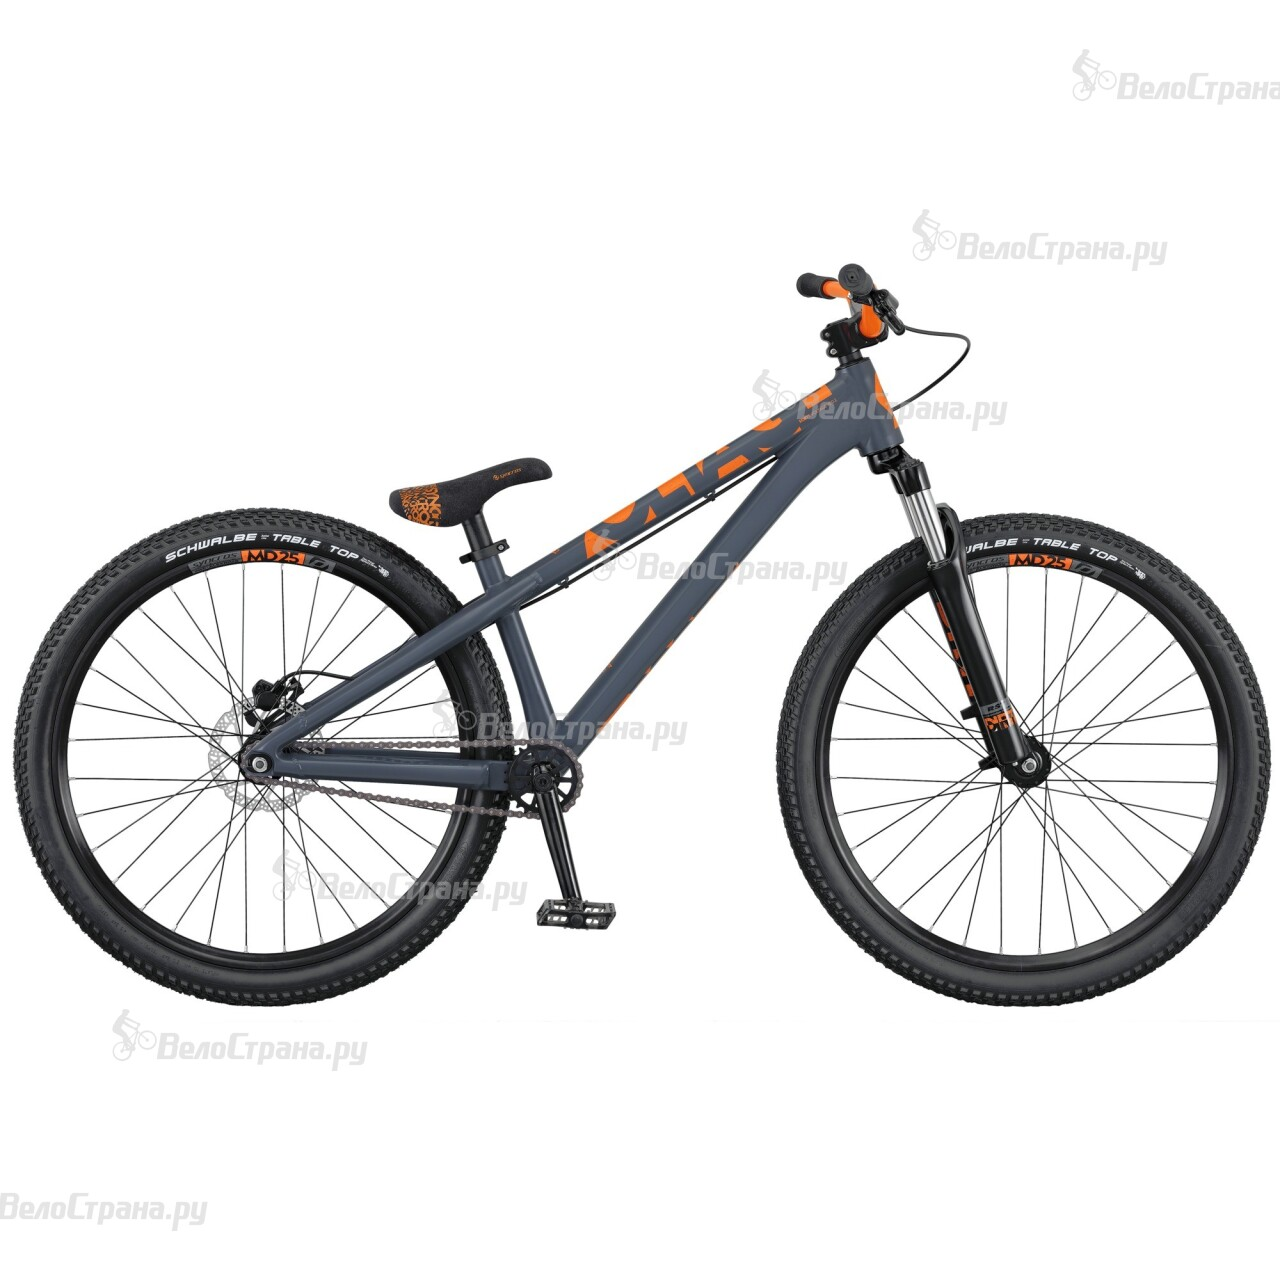 Велосипед Scott Voltage YZ 0.2 (2016) велосипед scott voltage yz 20 2014